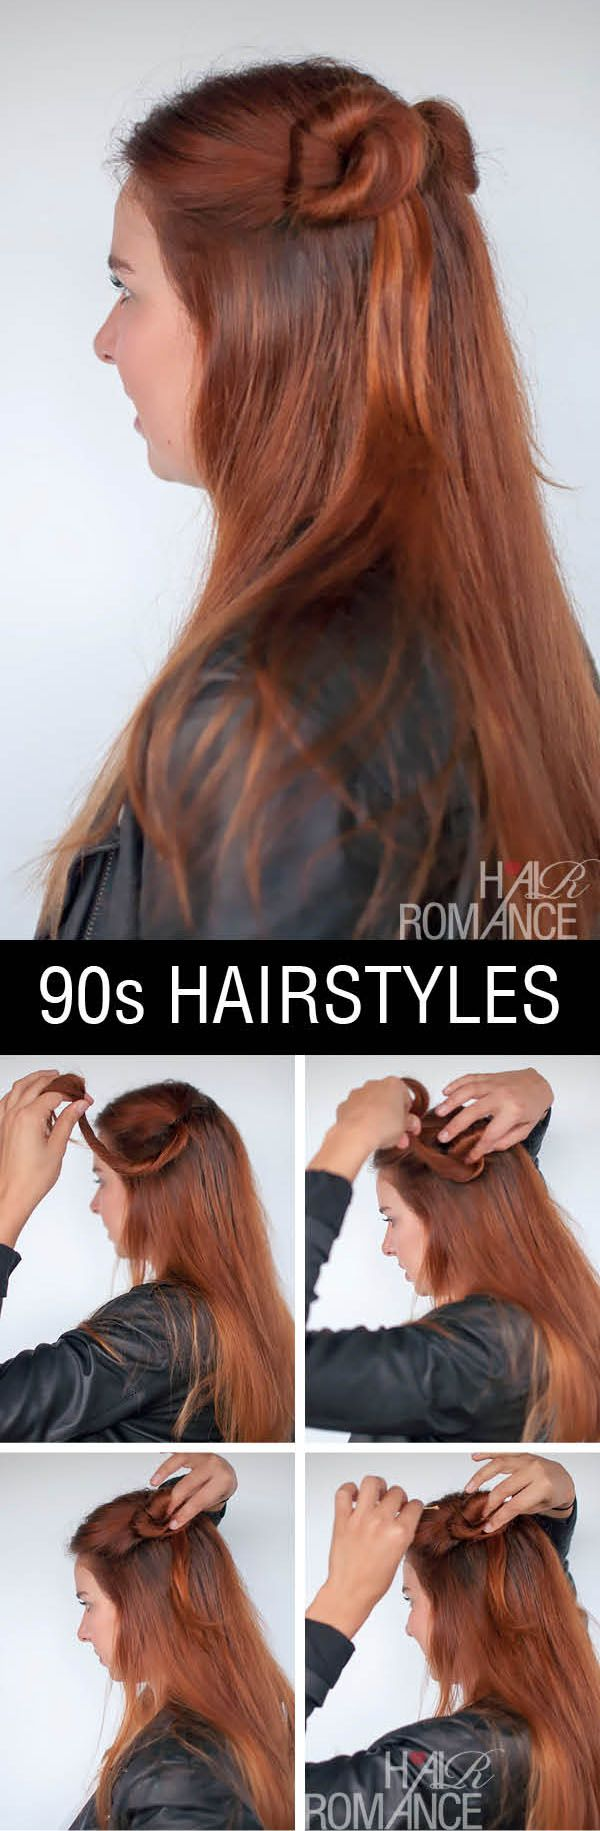 S normcore hair tutorials u half up double buns hairstyles hair